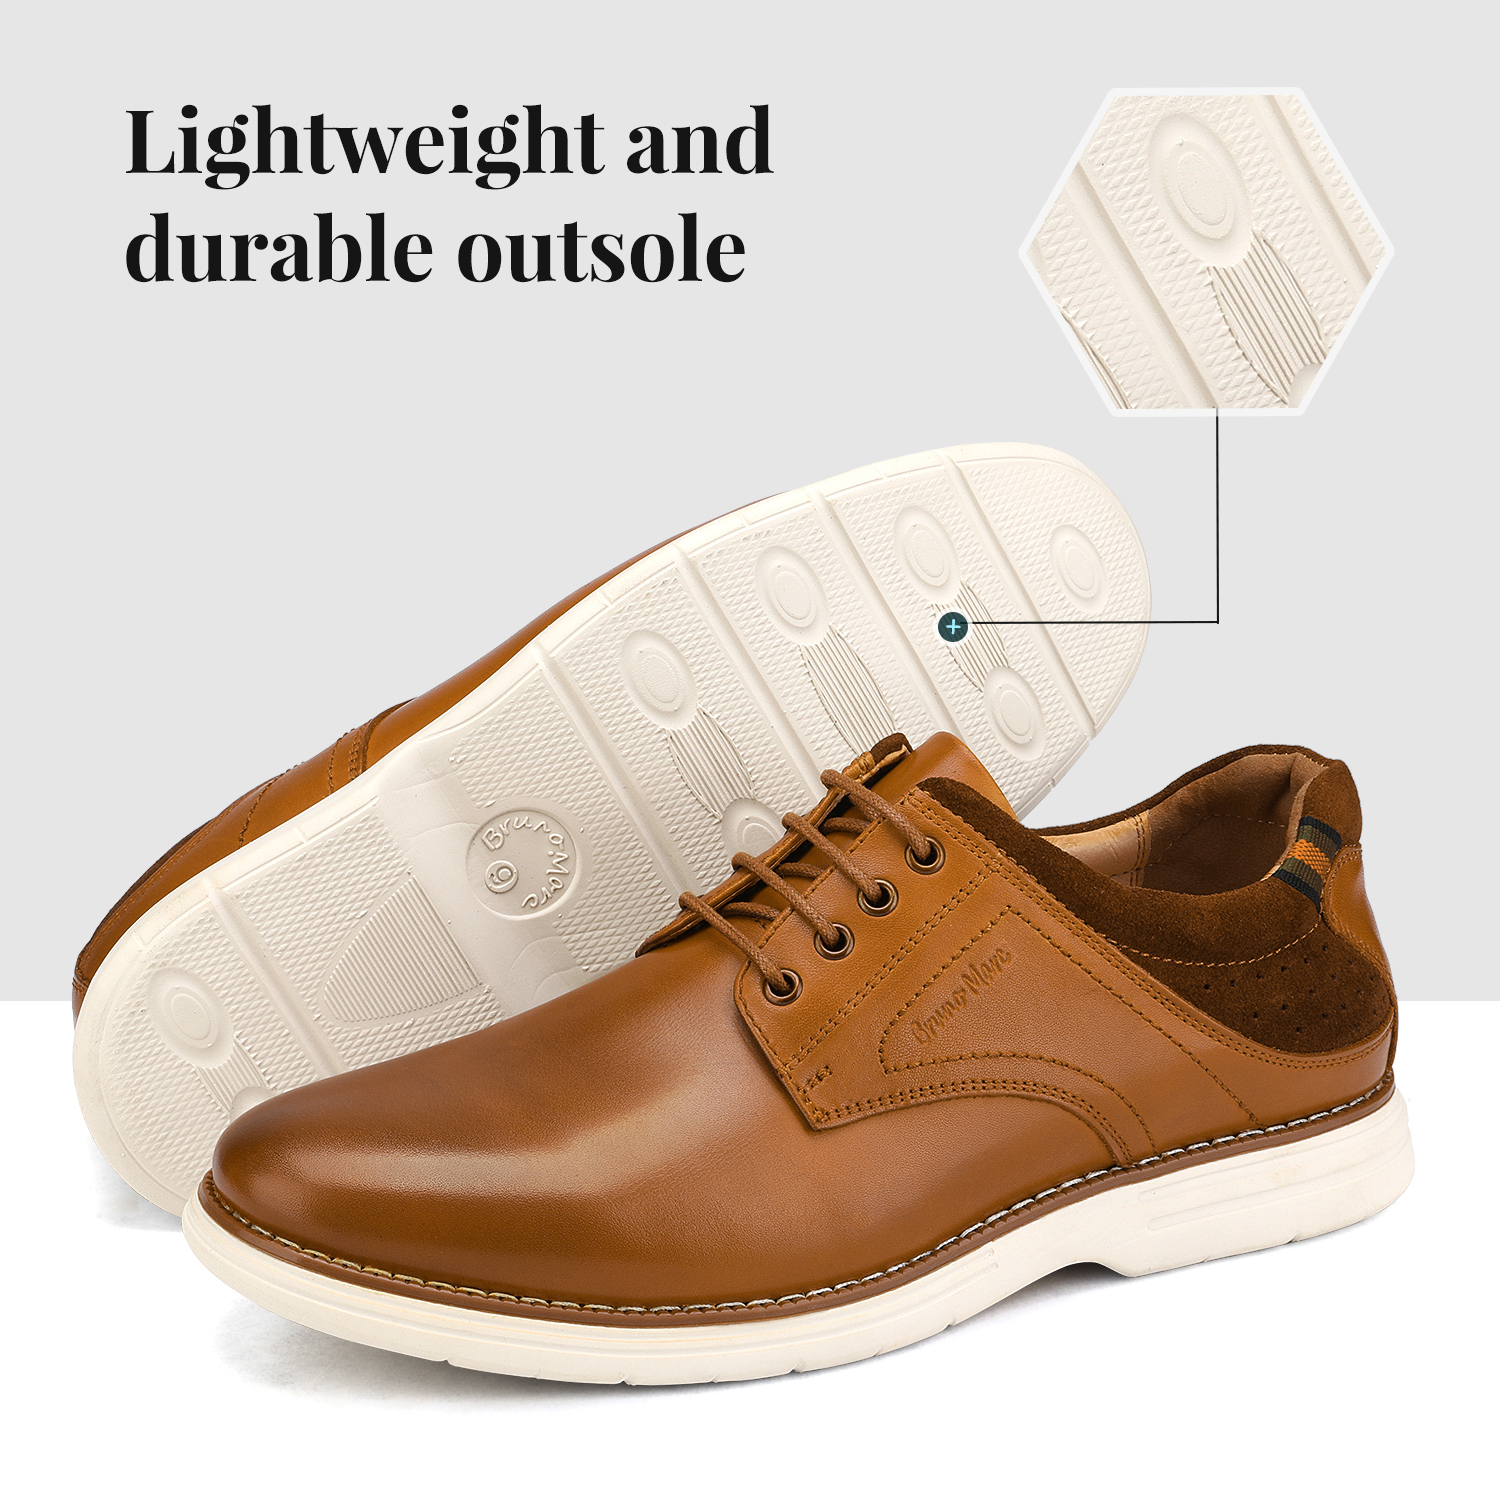 Mens-Fashion-Genuine-Leather-Business-Dress-Sneakers-Casual-Lace-up-Oxford-Shoe thumbnail 31